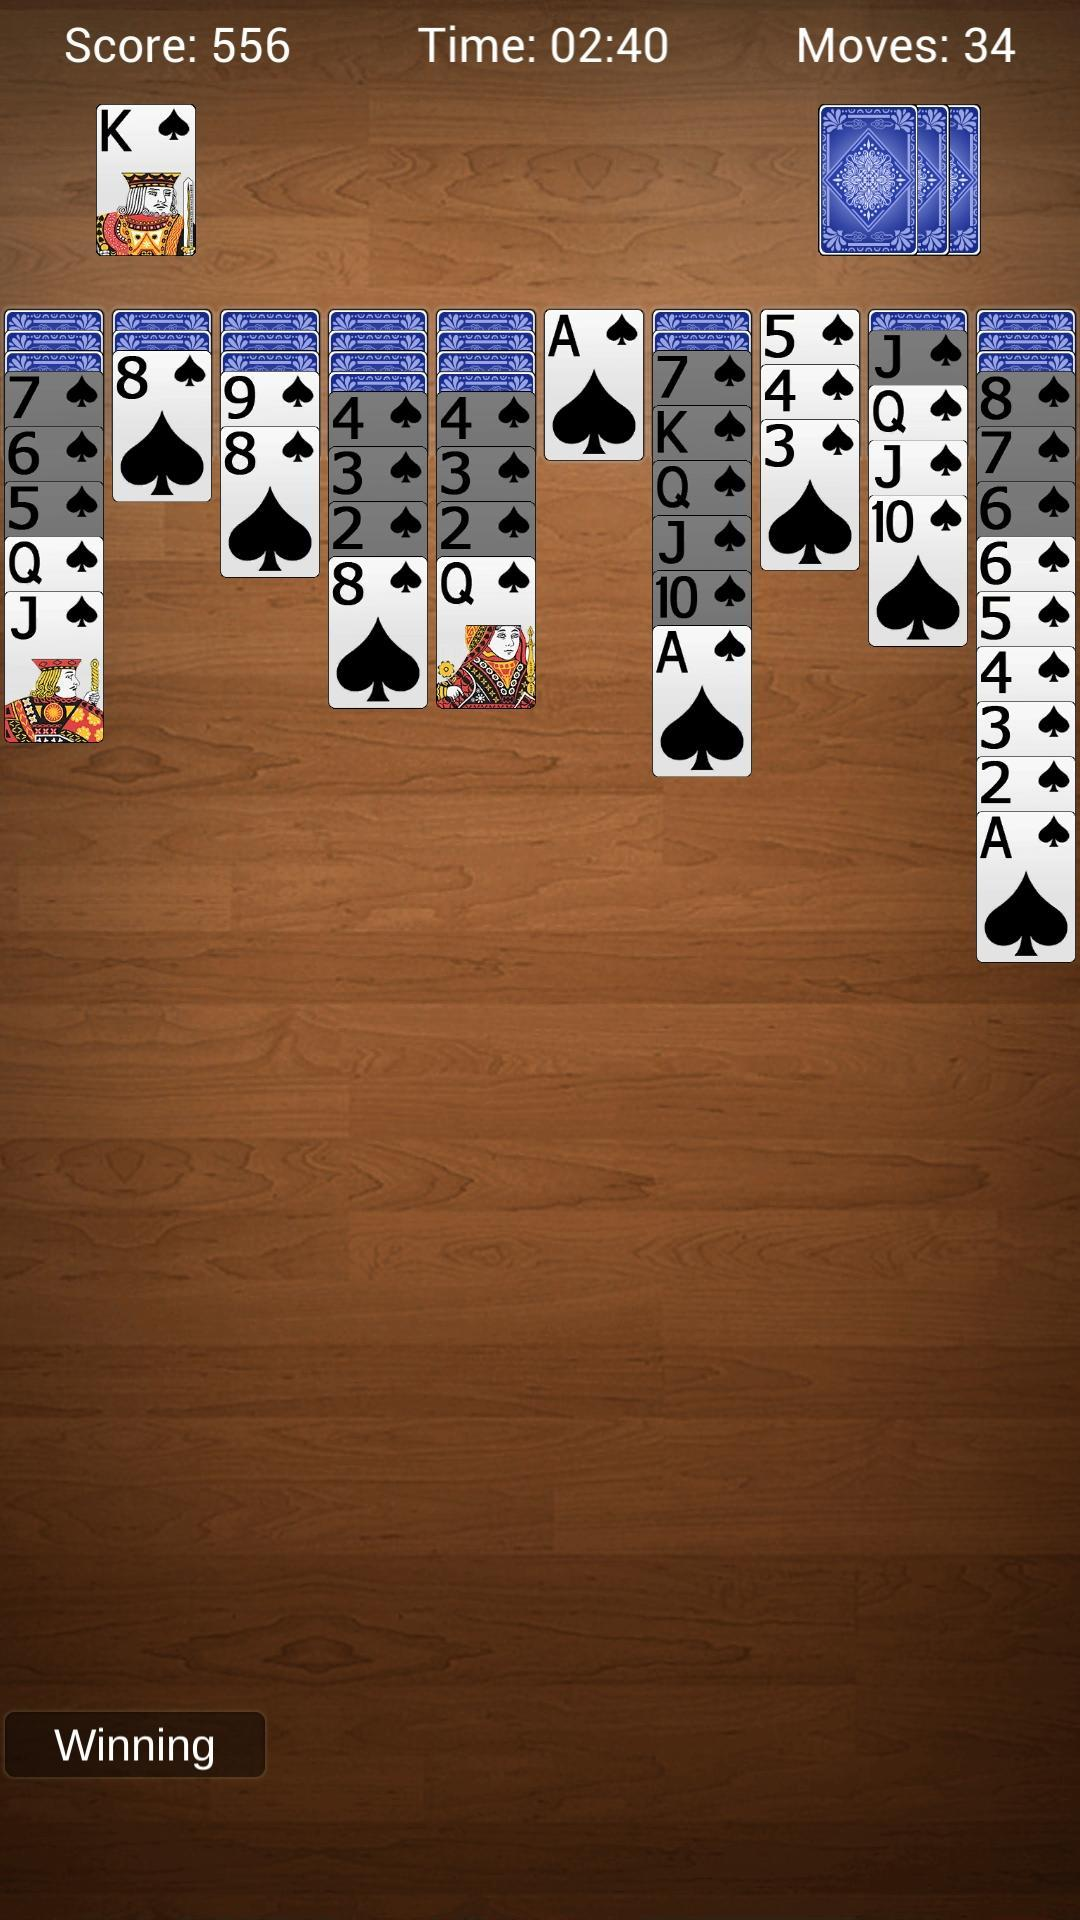 Spider Solitaire - Best Classic Card Games 1.8.0.20210225 Screenshot 15